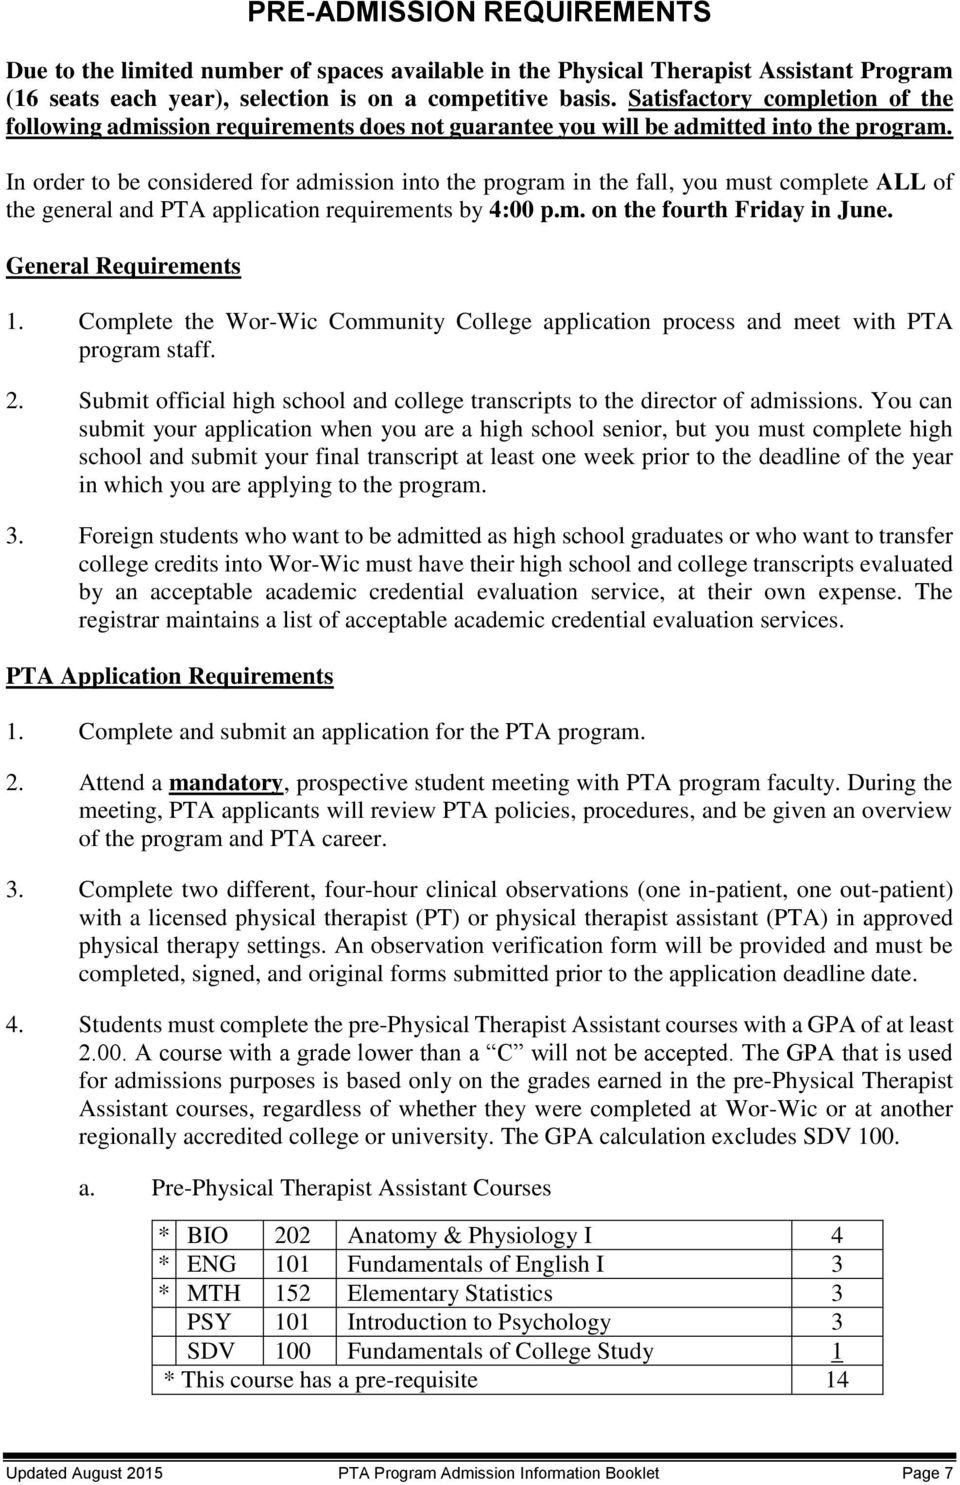 In order to be considered for admission into the program in the fall, you must complete ALL of the general and PTA application requirements by 4:00 p.m. on the fourth Friday in June.